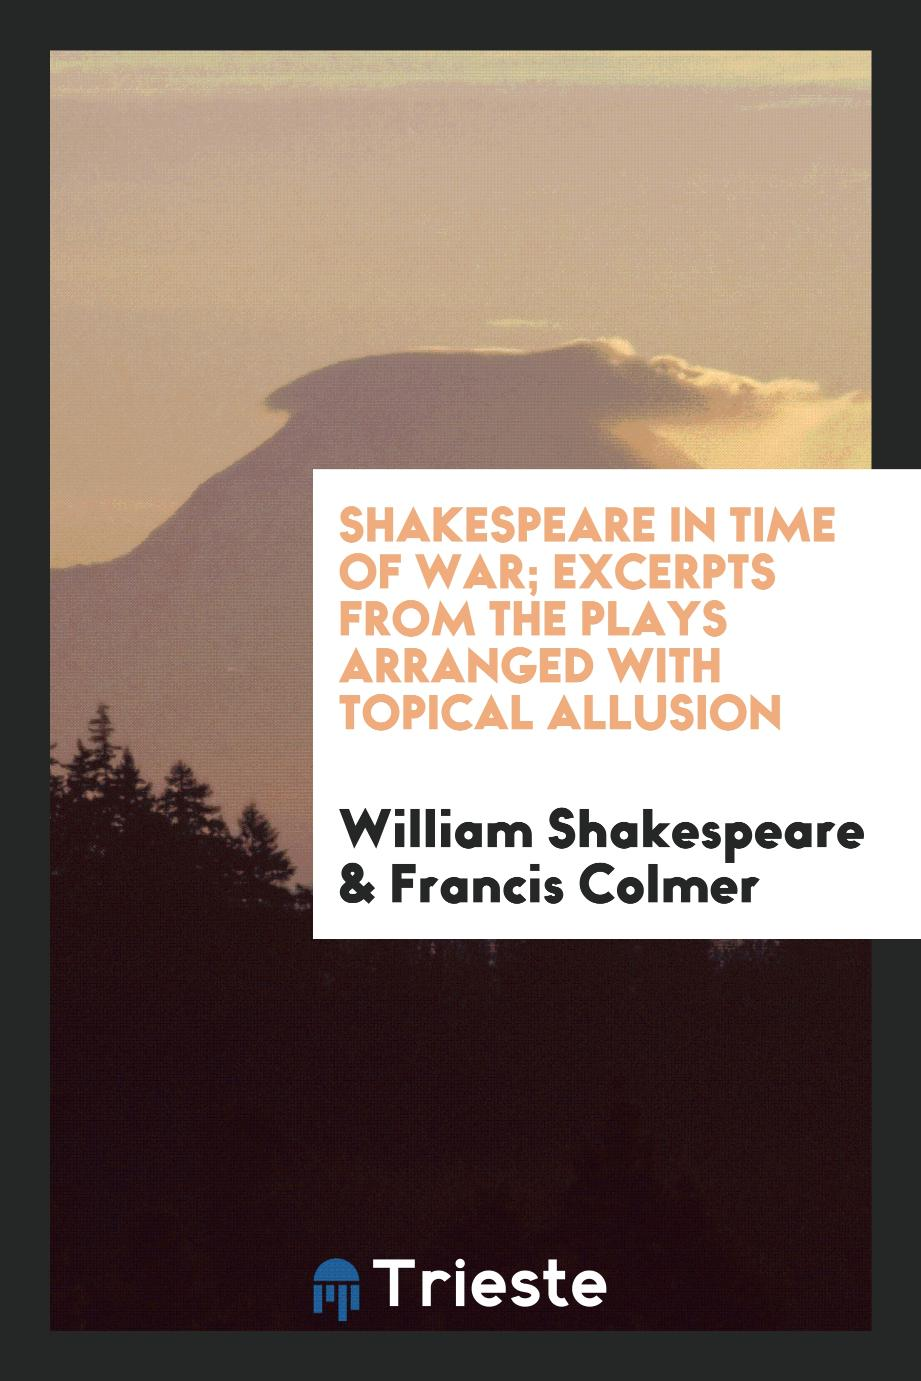 Shakespeare in time of war; excerpts from the plays arranged with topical allusion